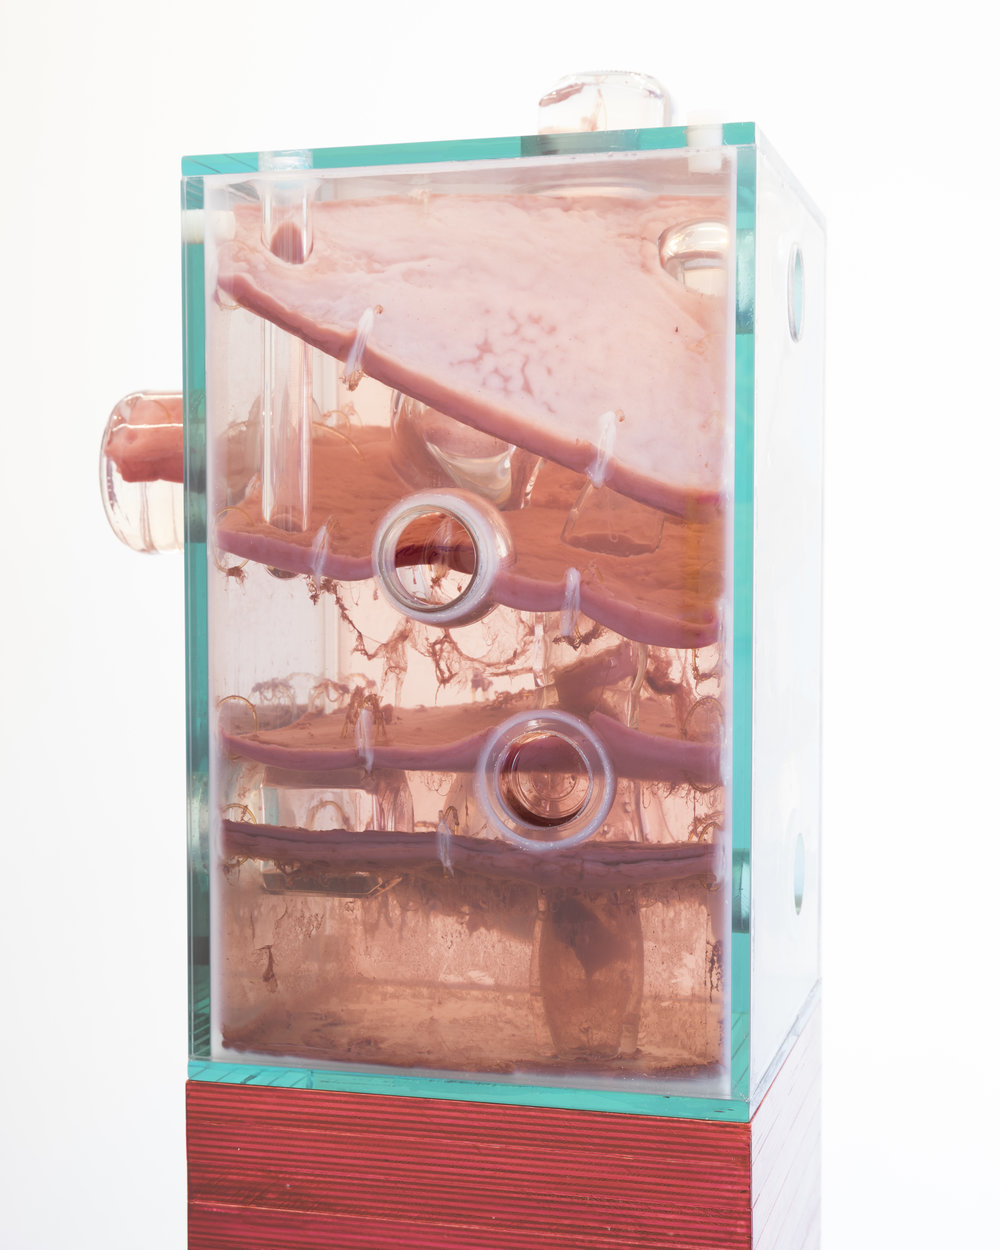 Jennifer Sirey  Mongk  2019 Glass, bacteria, vinegar, water, monofilament, plywood, paint, and OSB board 63 x 10 1/2 x 10 1/2 inches